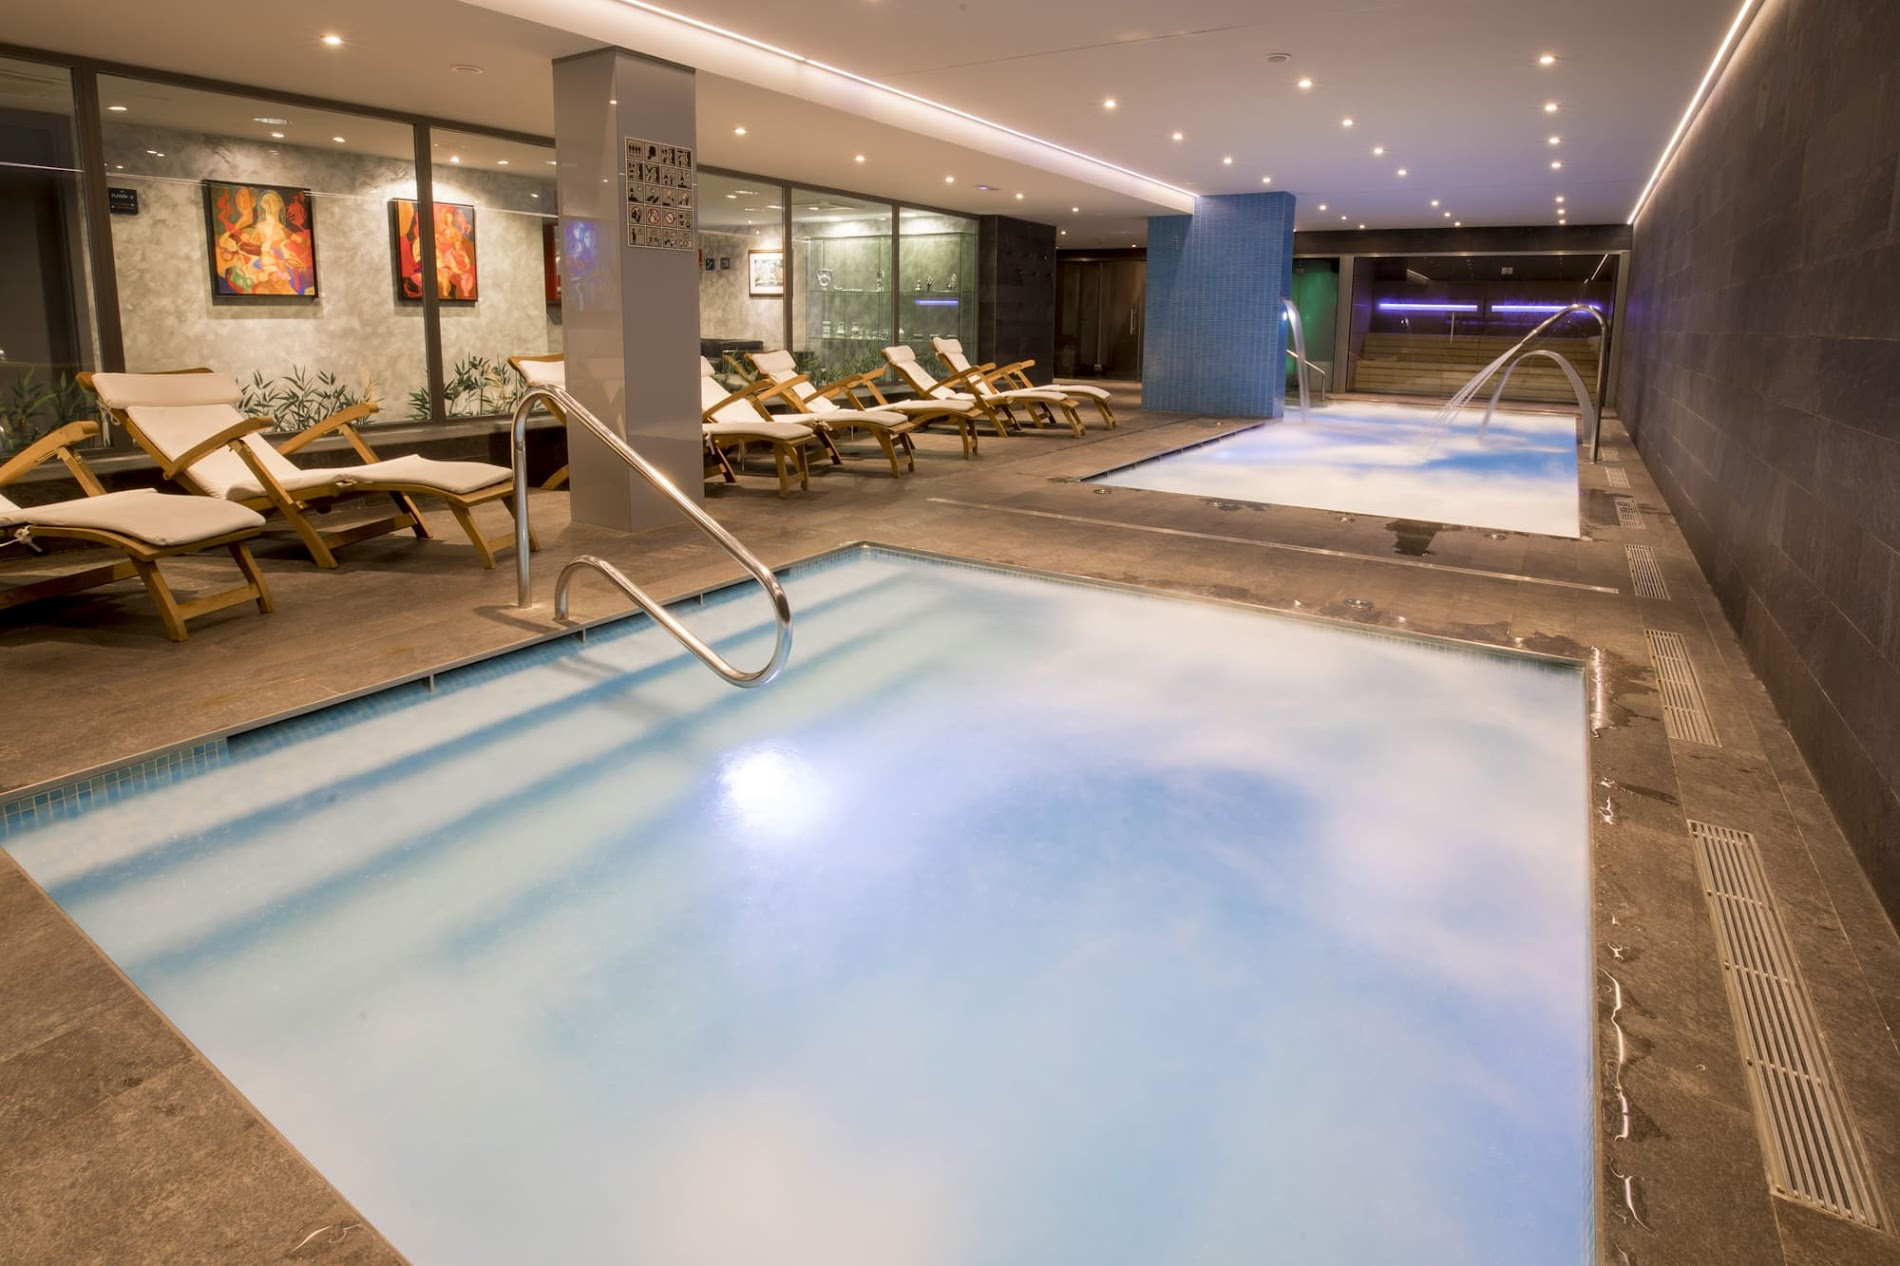 Spa Hotel Font Argent Canillo